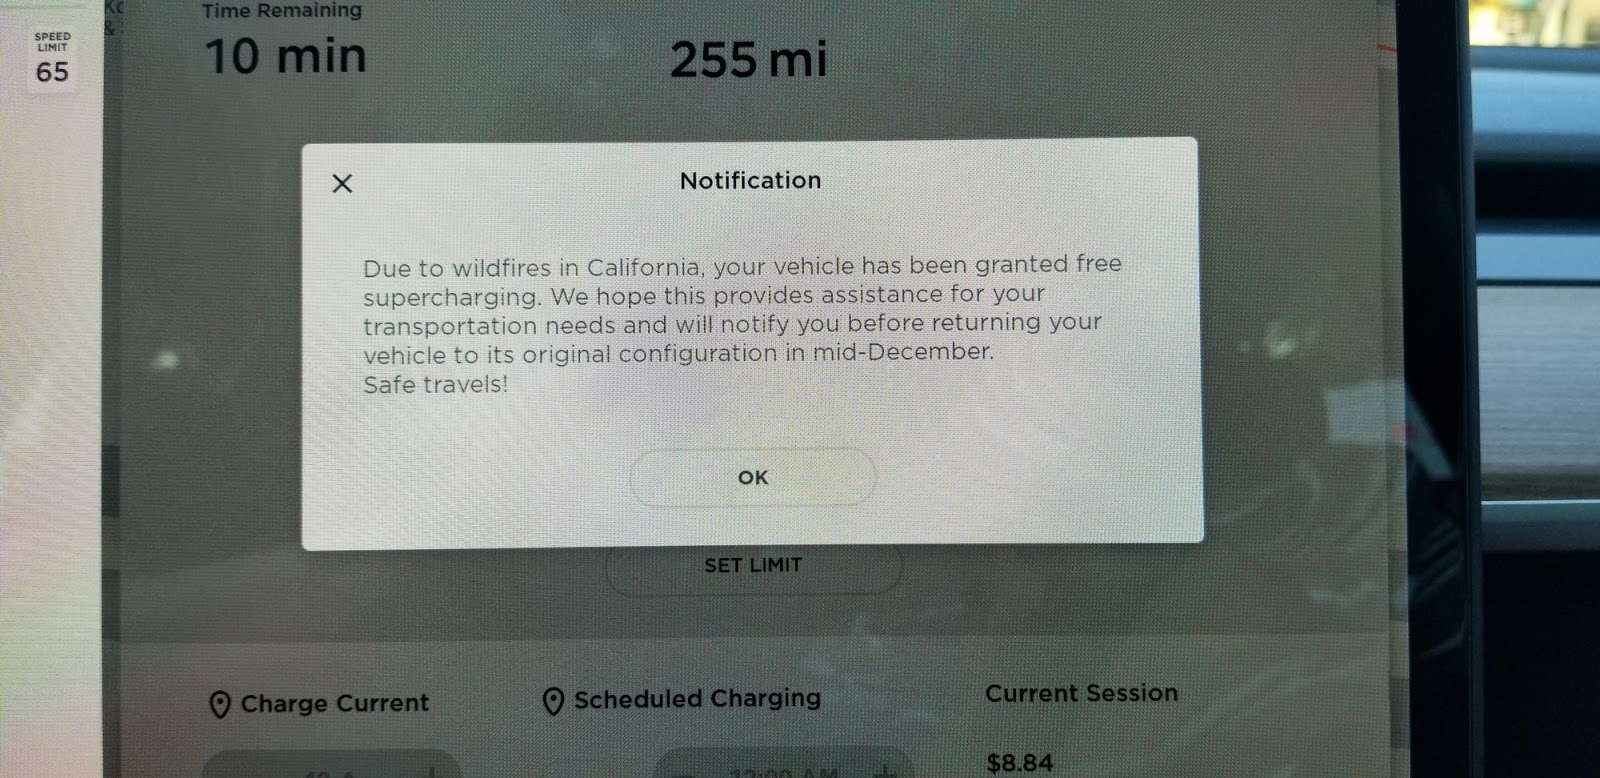 Tesla has made Supercharging free for owners affected by California destructive fire